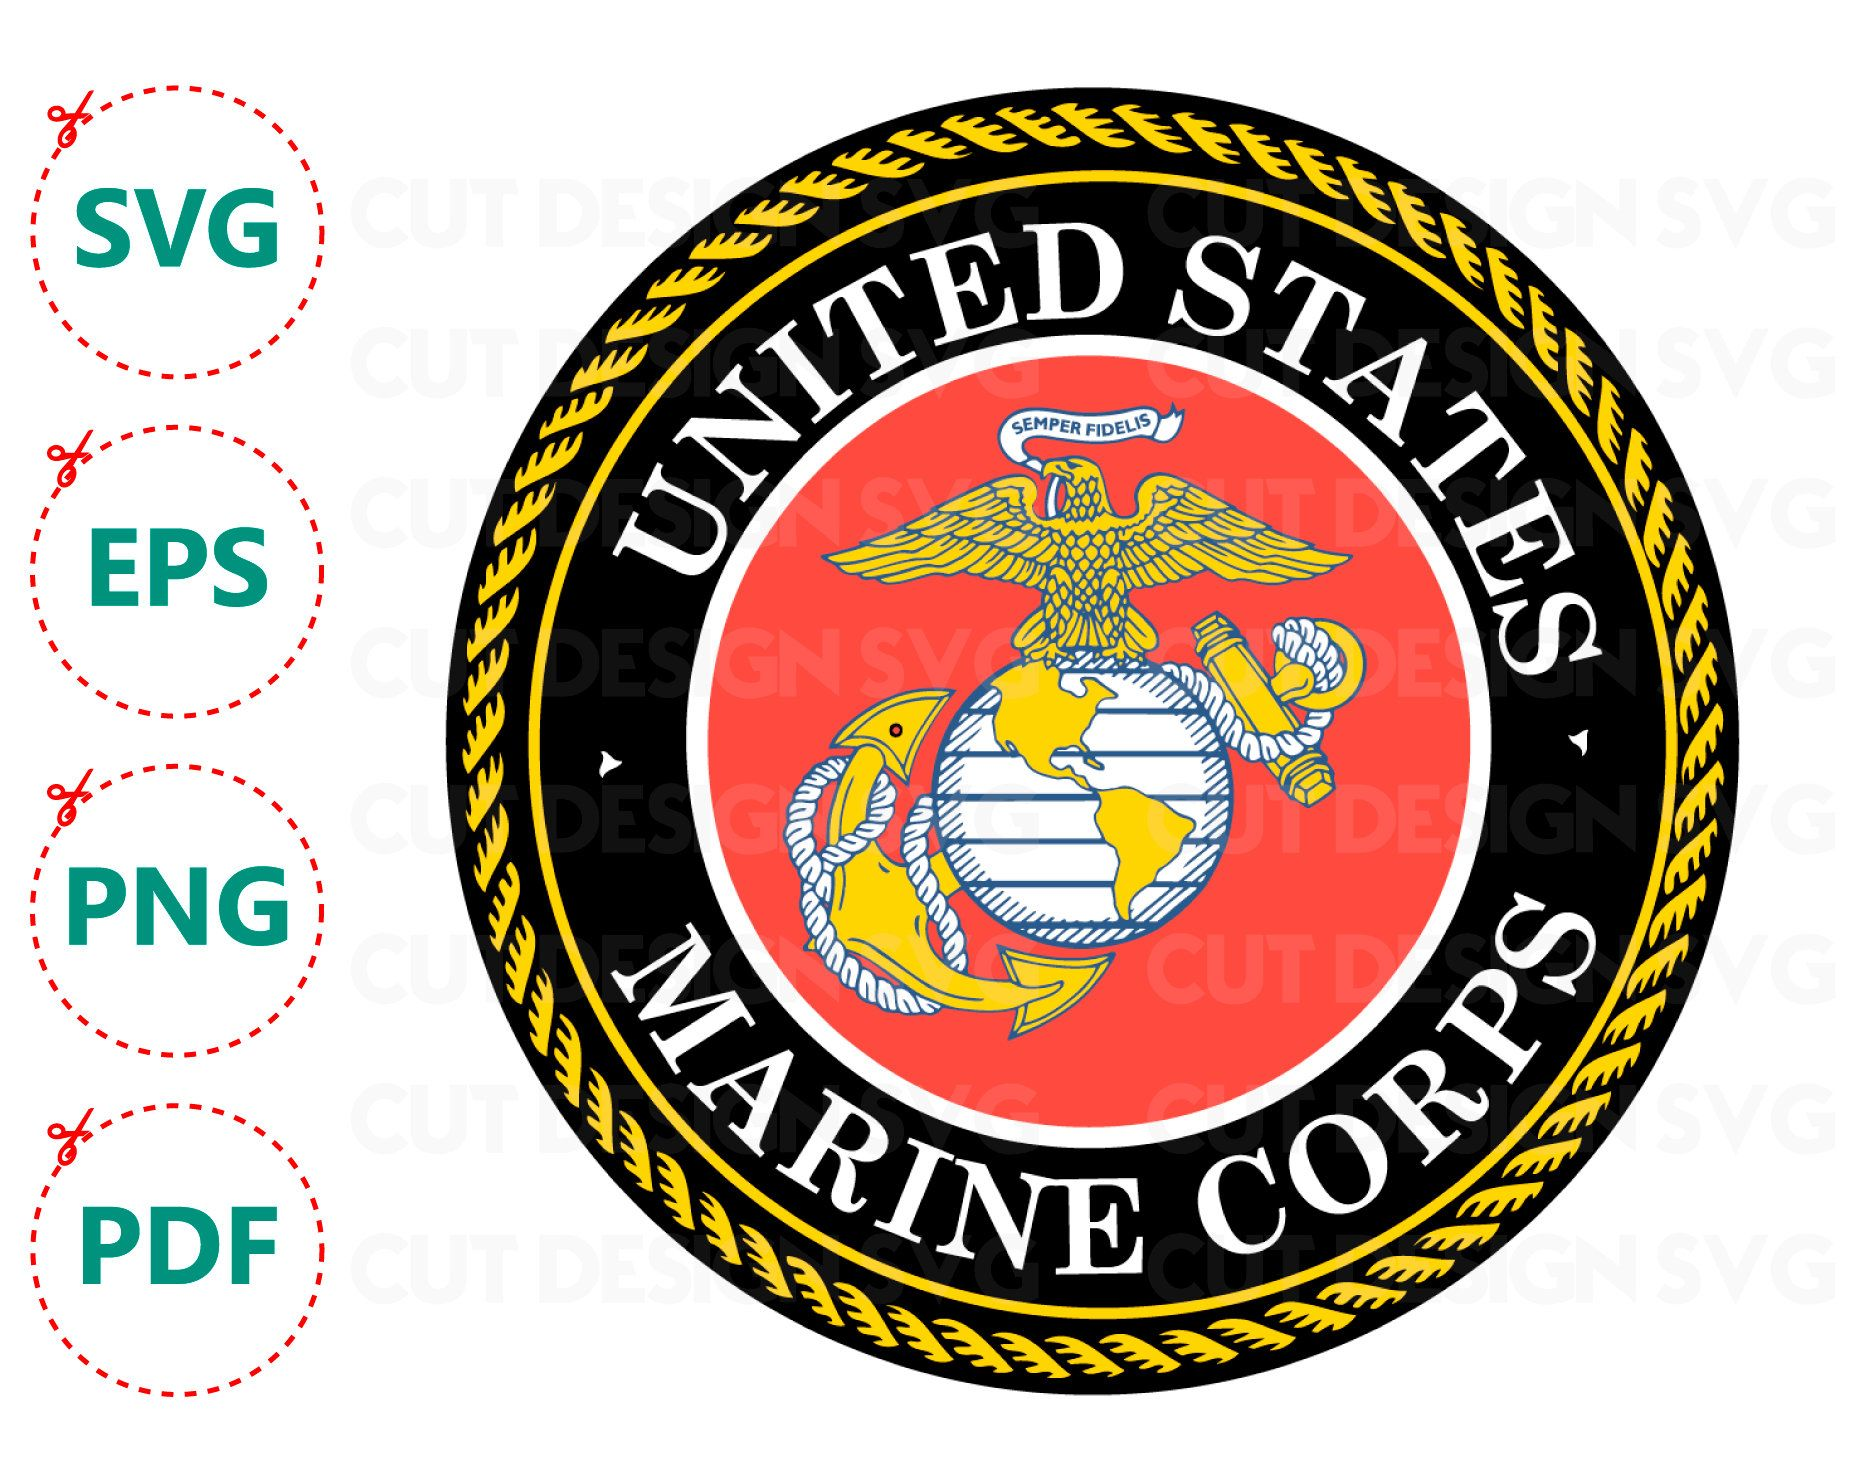 marine corps logo svg vector and clip art inspiration u2022 rh clipartsource today free marine corps emblem vector marine corps league logo vector